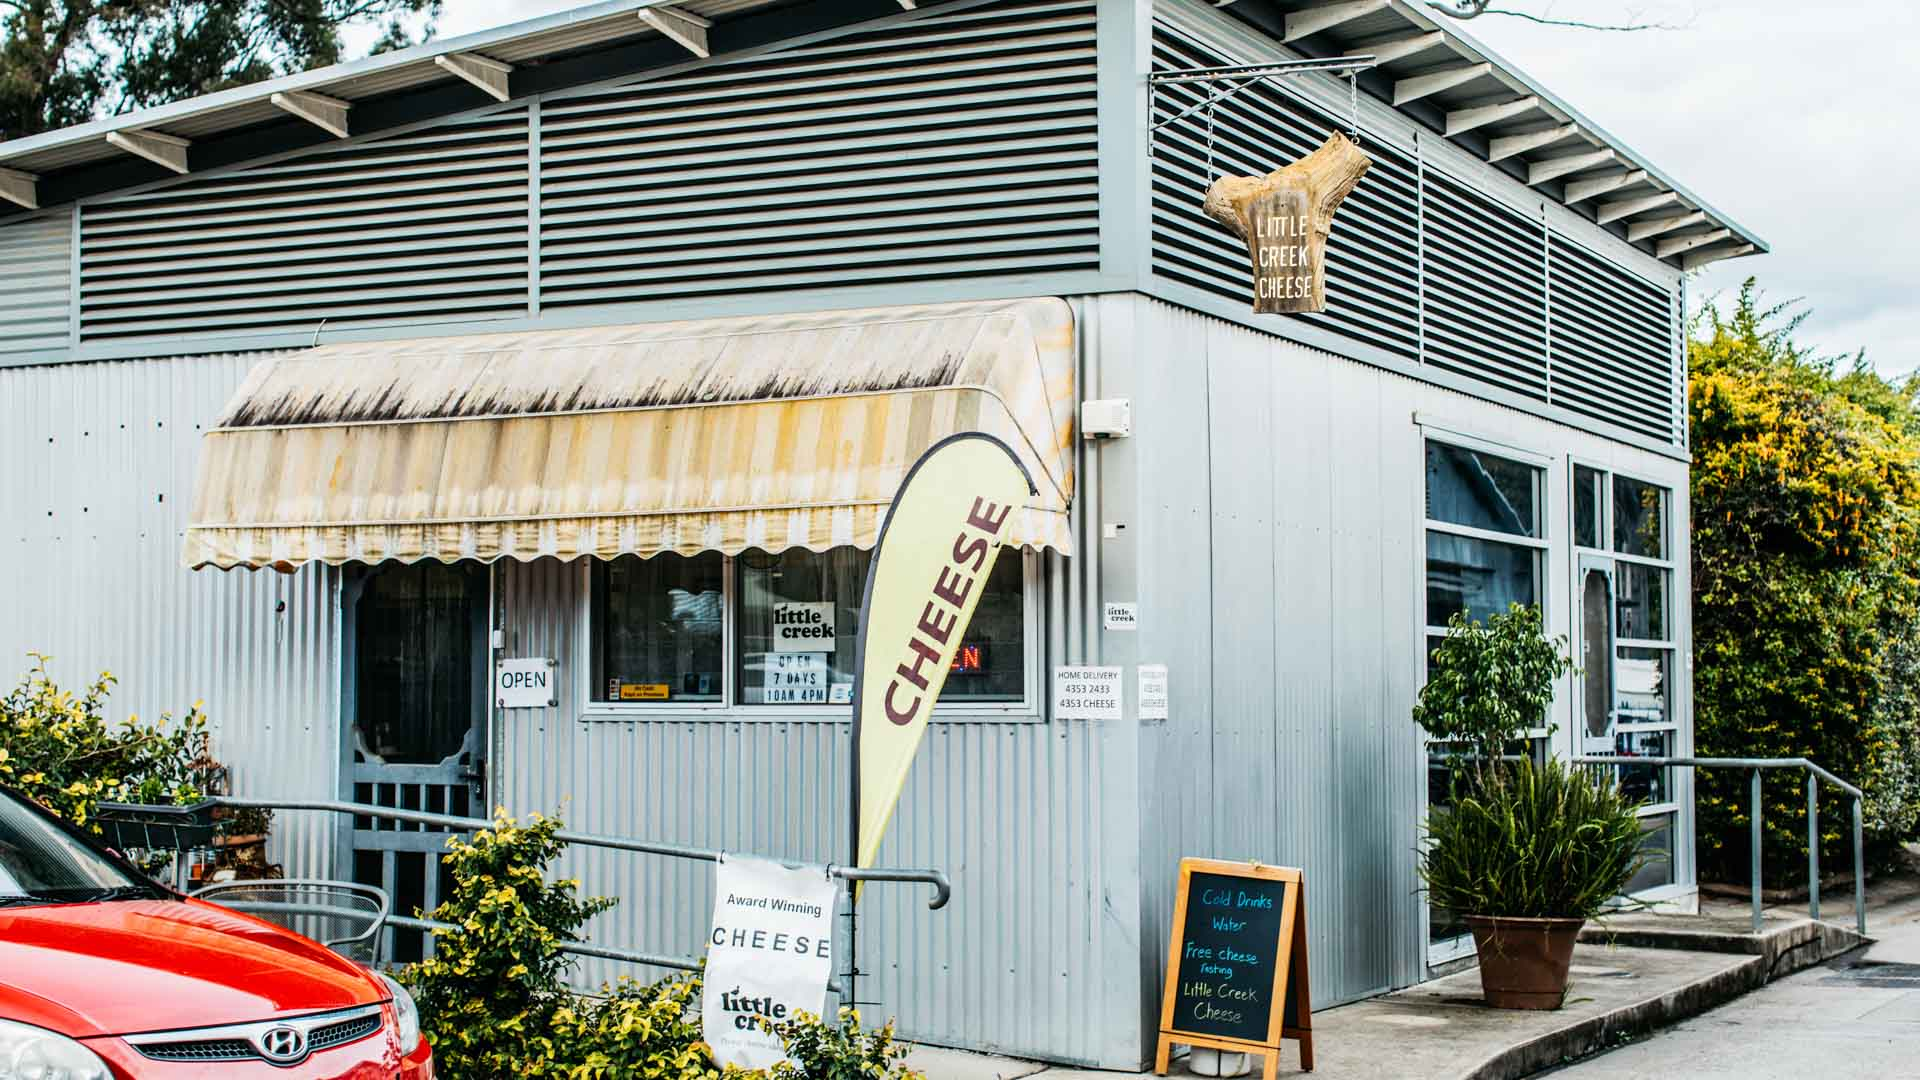 Exterior of Little Creek Cheese in Central Coast